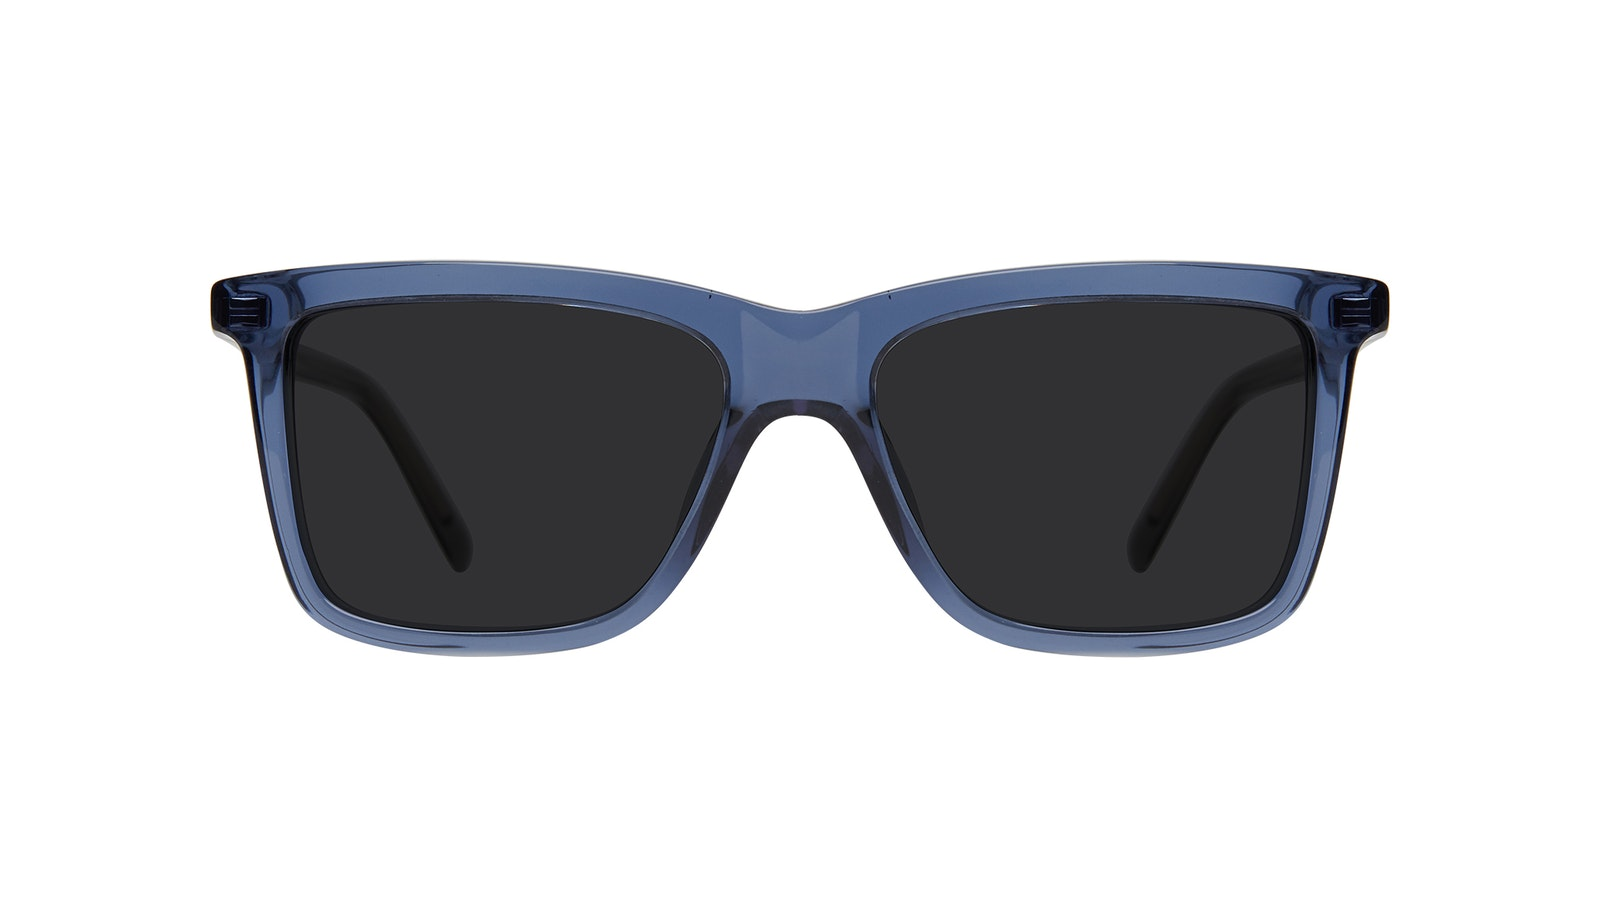 Affordable Fashion Glasses Square Sunglasses Kids Elite Junior Oxford Blue